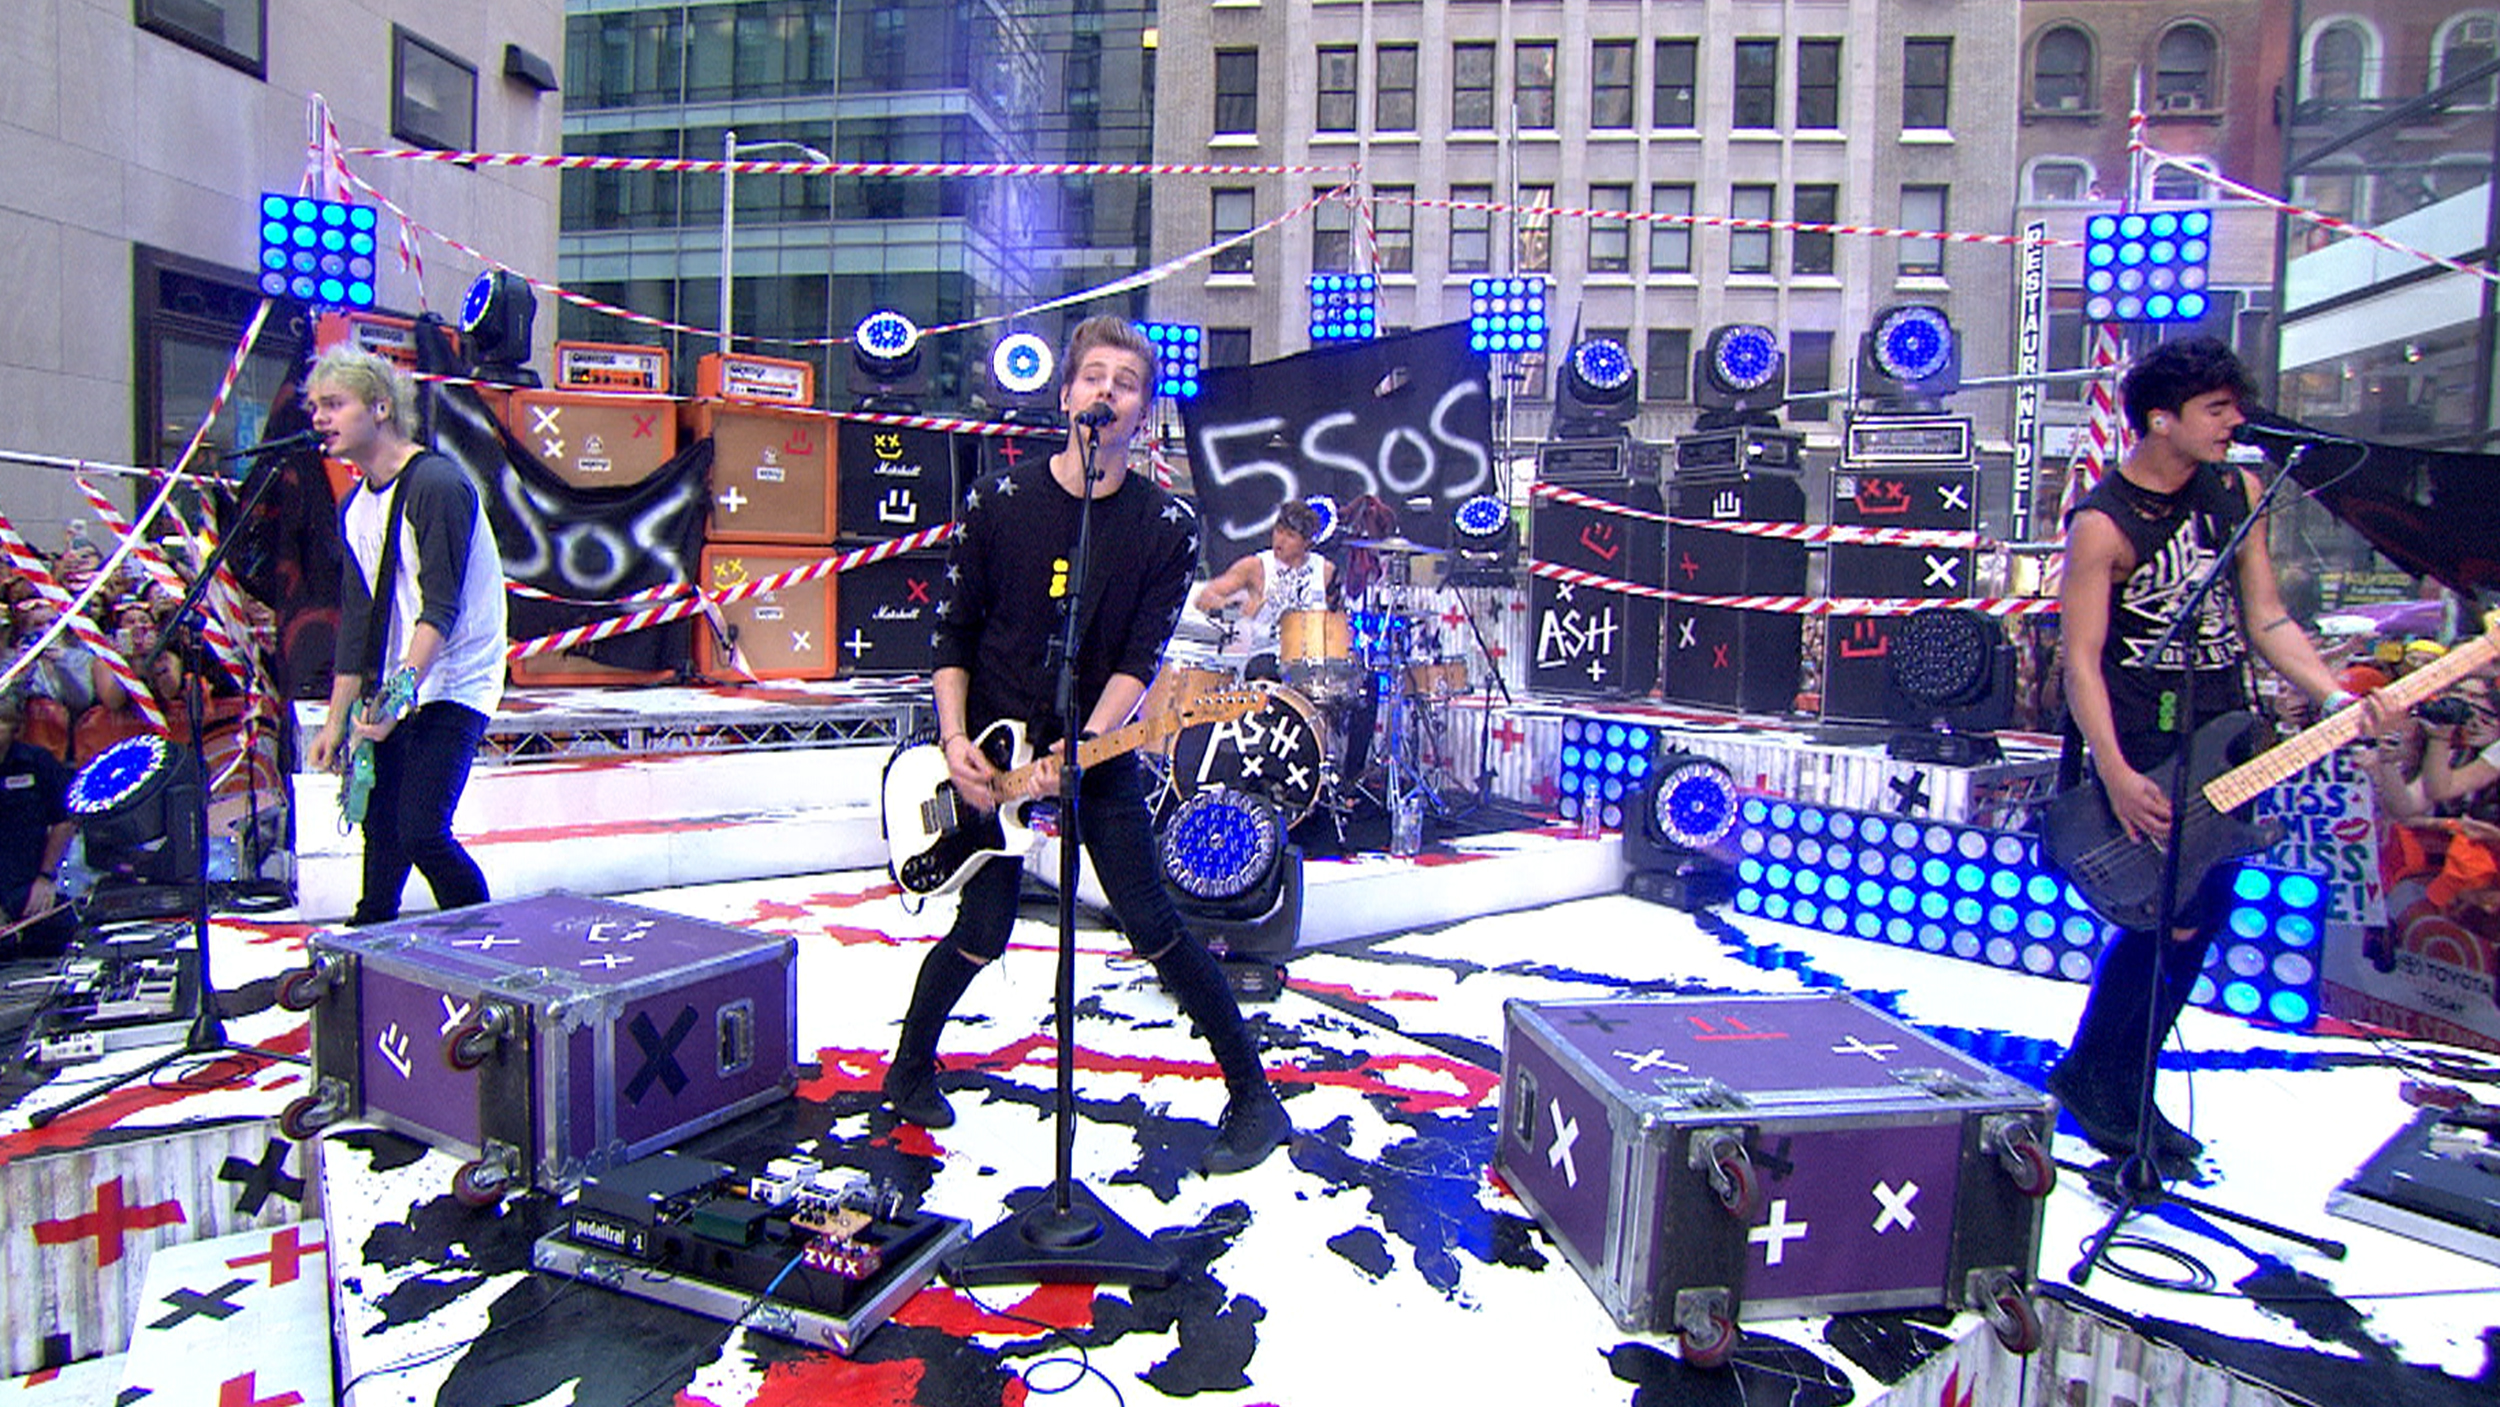 5 Seconds Of Summer Bring The Heat To Adoring Throng Of Fans On